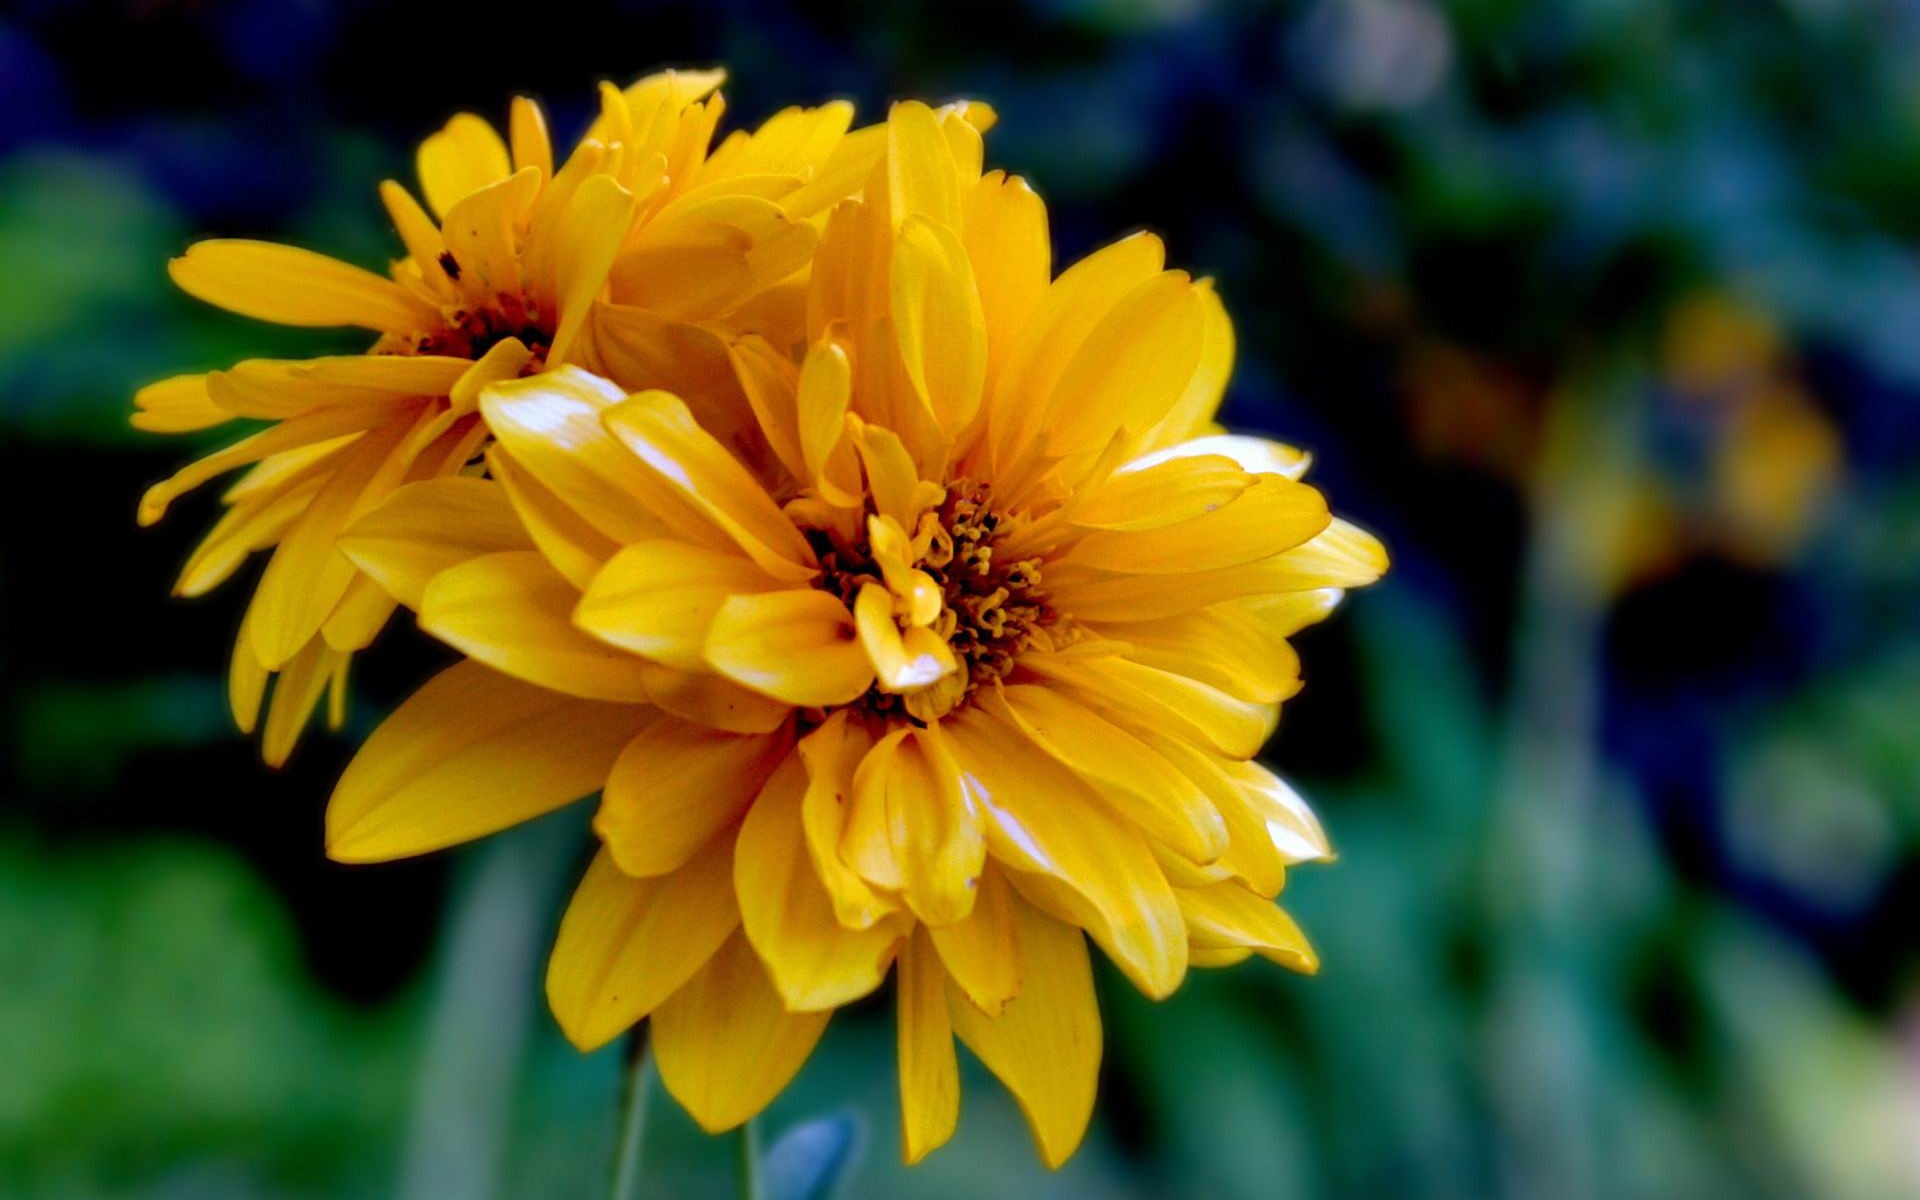 Yellow flower photography image collections flower decoration ideas yellow flower photography gallery flower decoration ideas yellow flower photography choice image flower decoration ideas yellow mightylinksfo